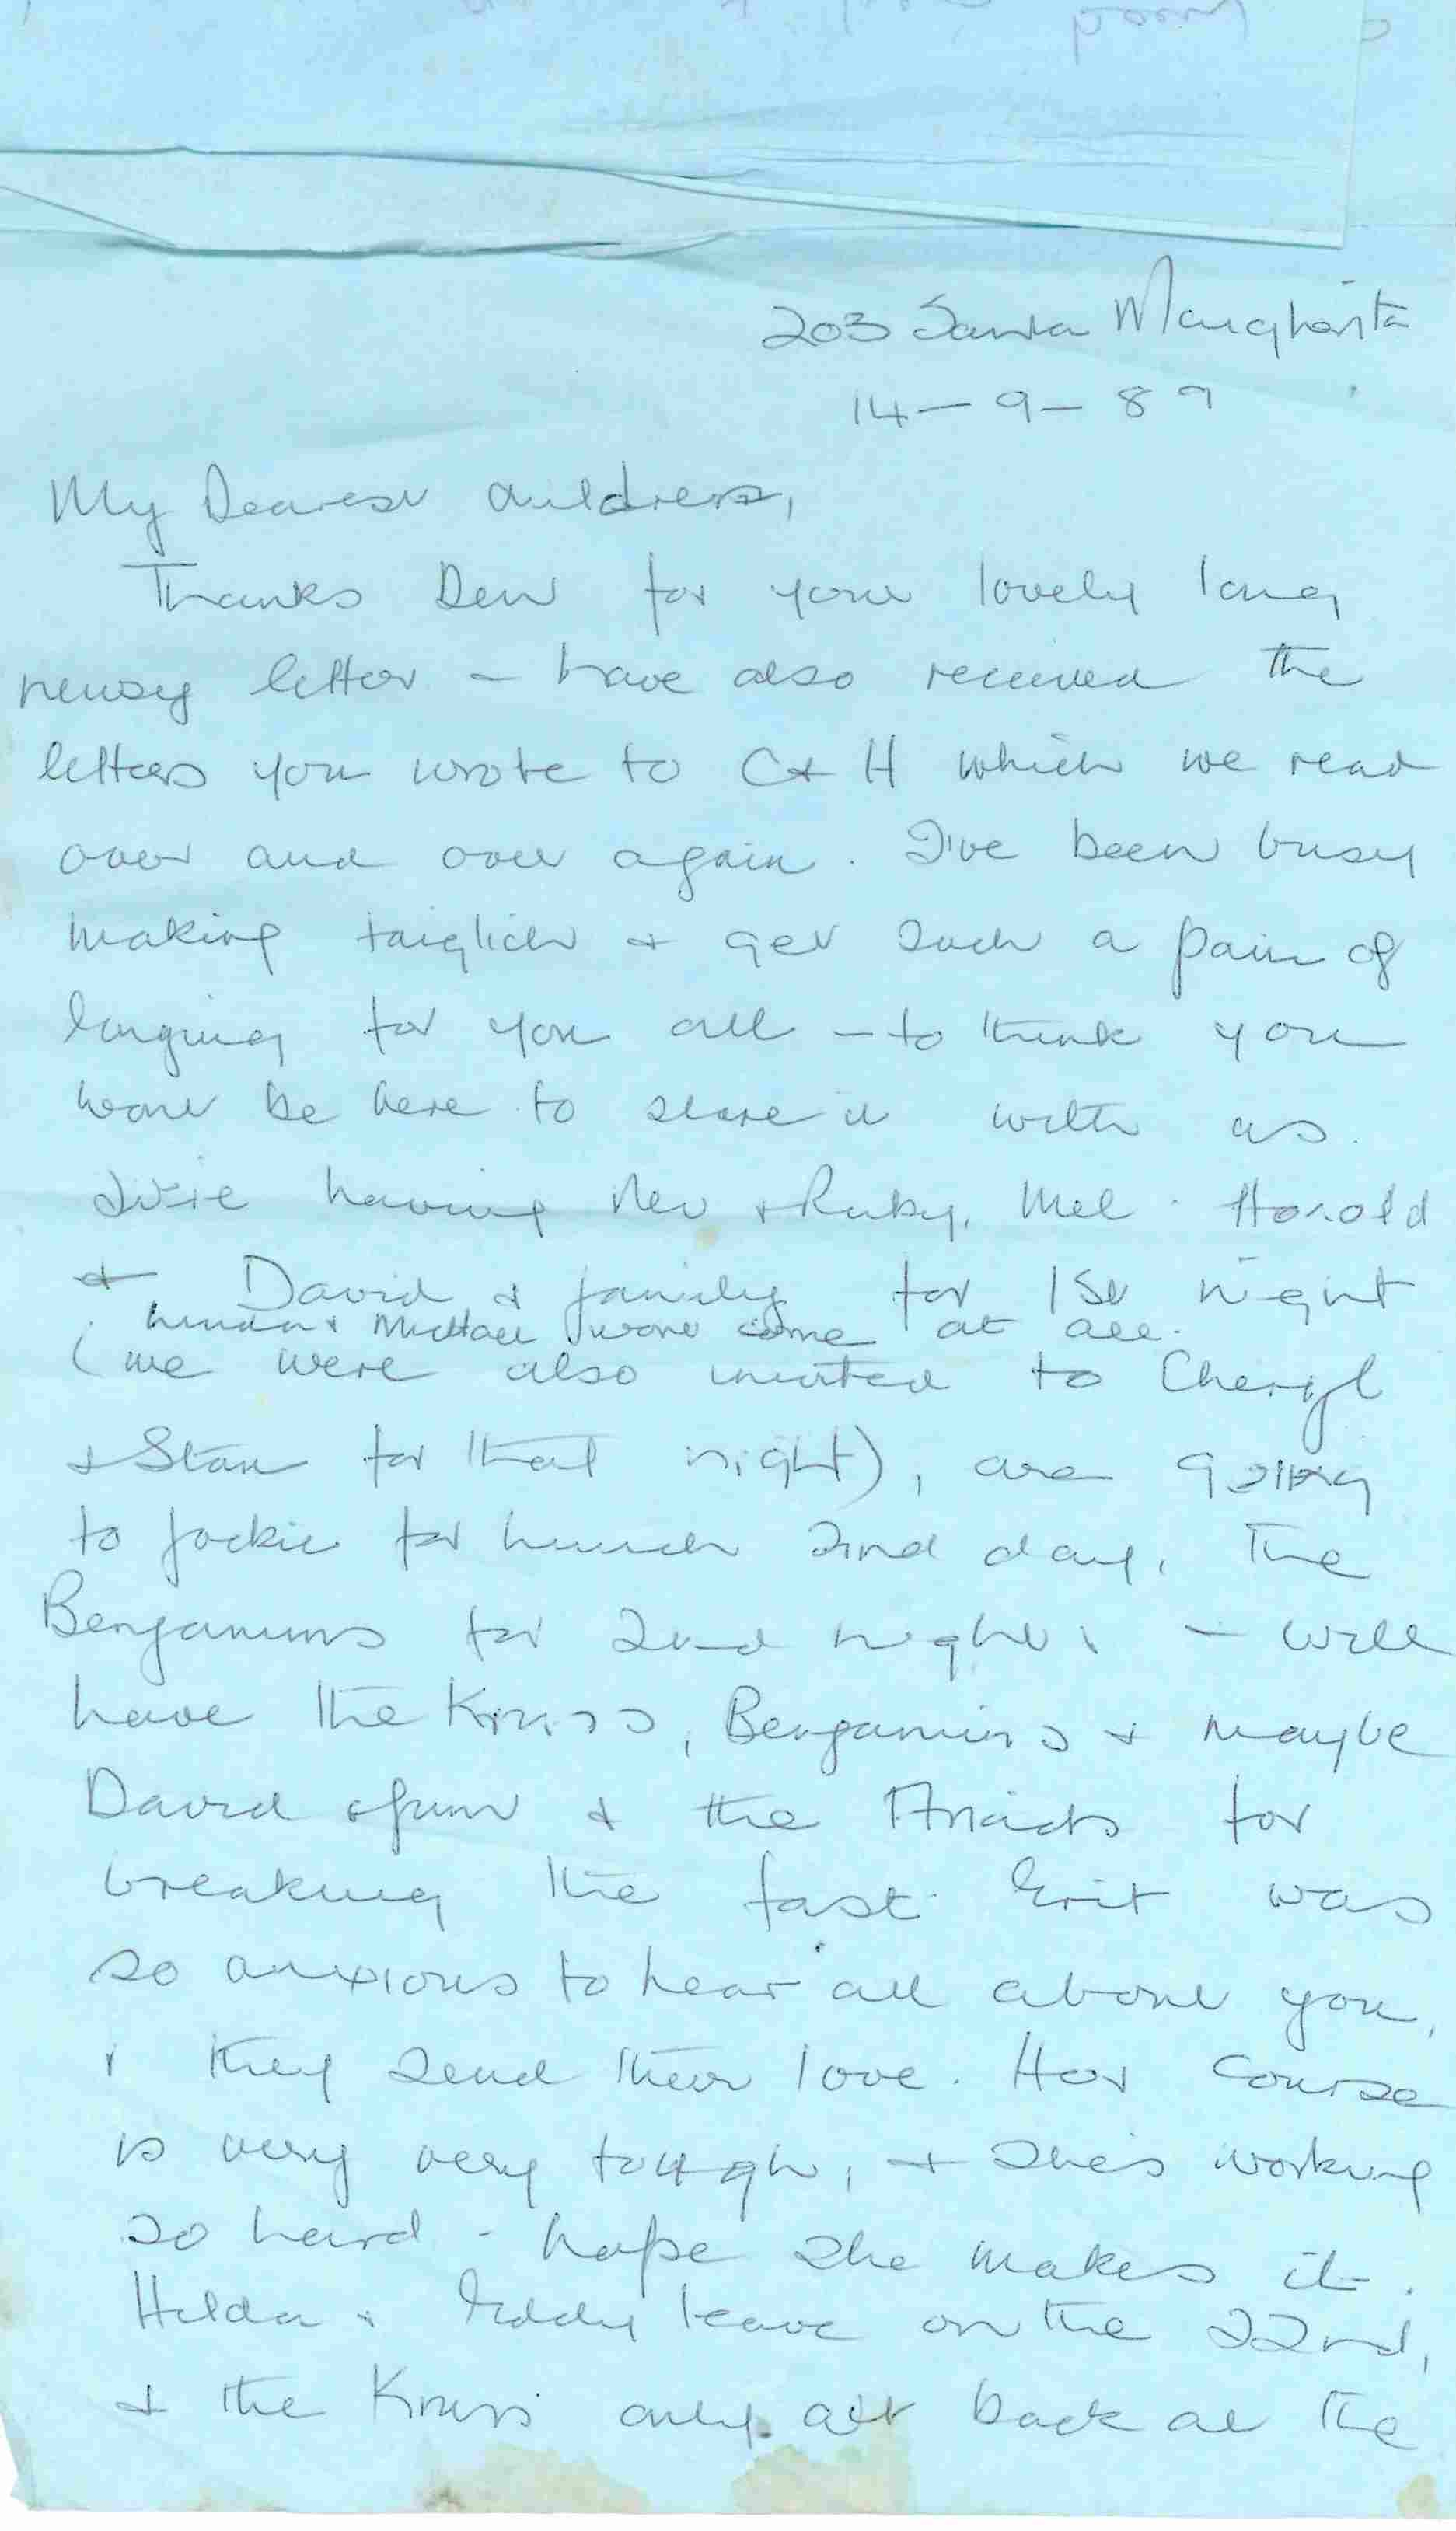 Letter written to Denise